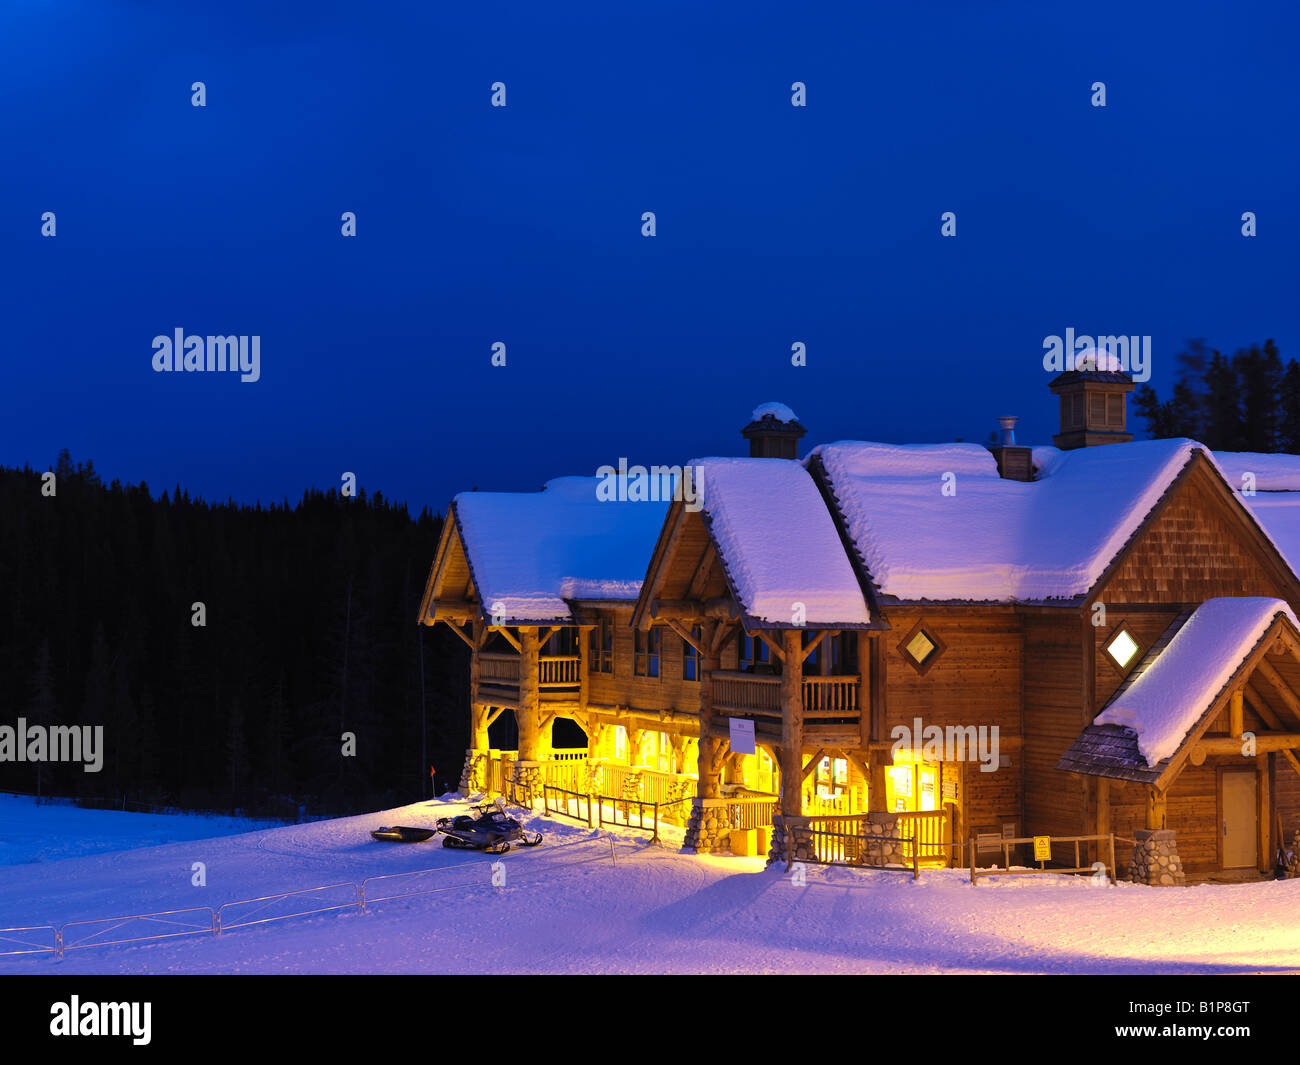 Canada Alberta Banff National Park Lake Louise Wiskeyjack ski lodge in winter - Stock Image